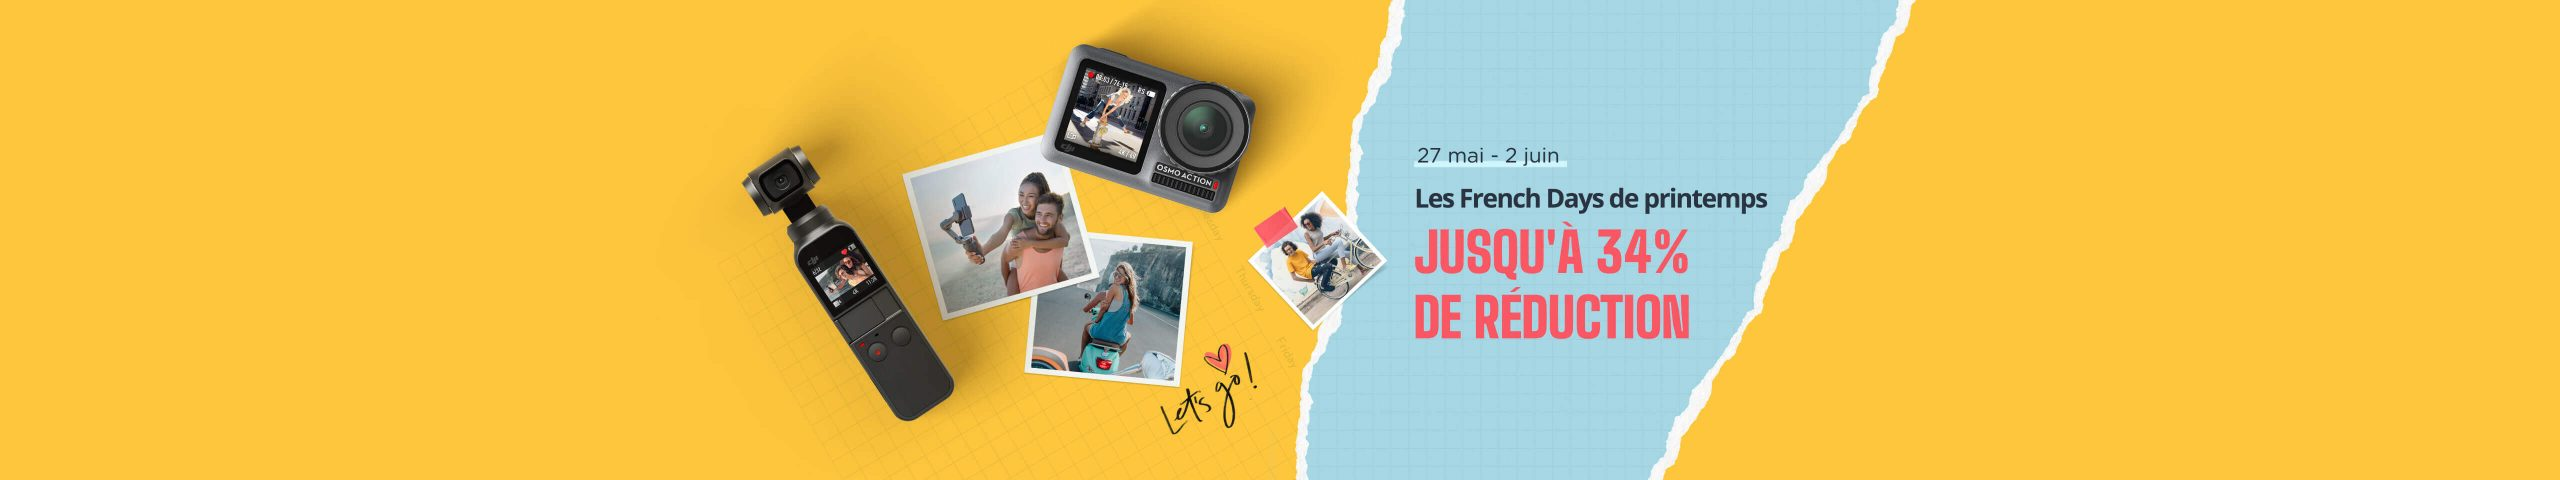 dji-promotion-osmo-mavic-drone-camera-french-days